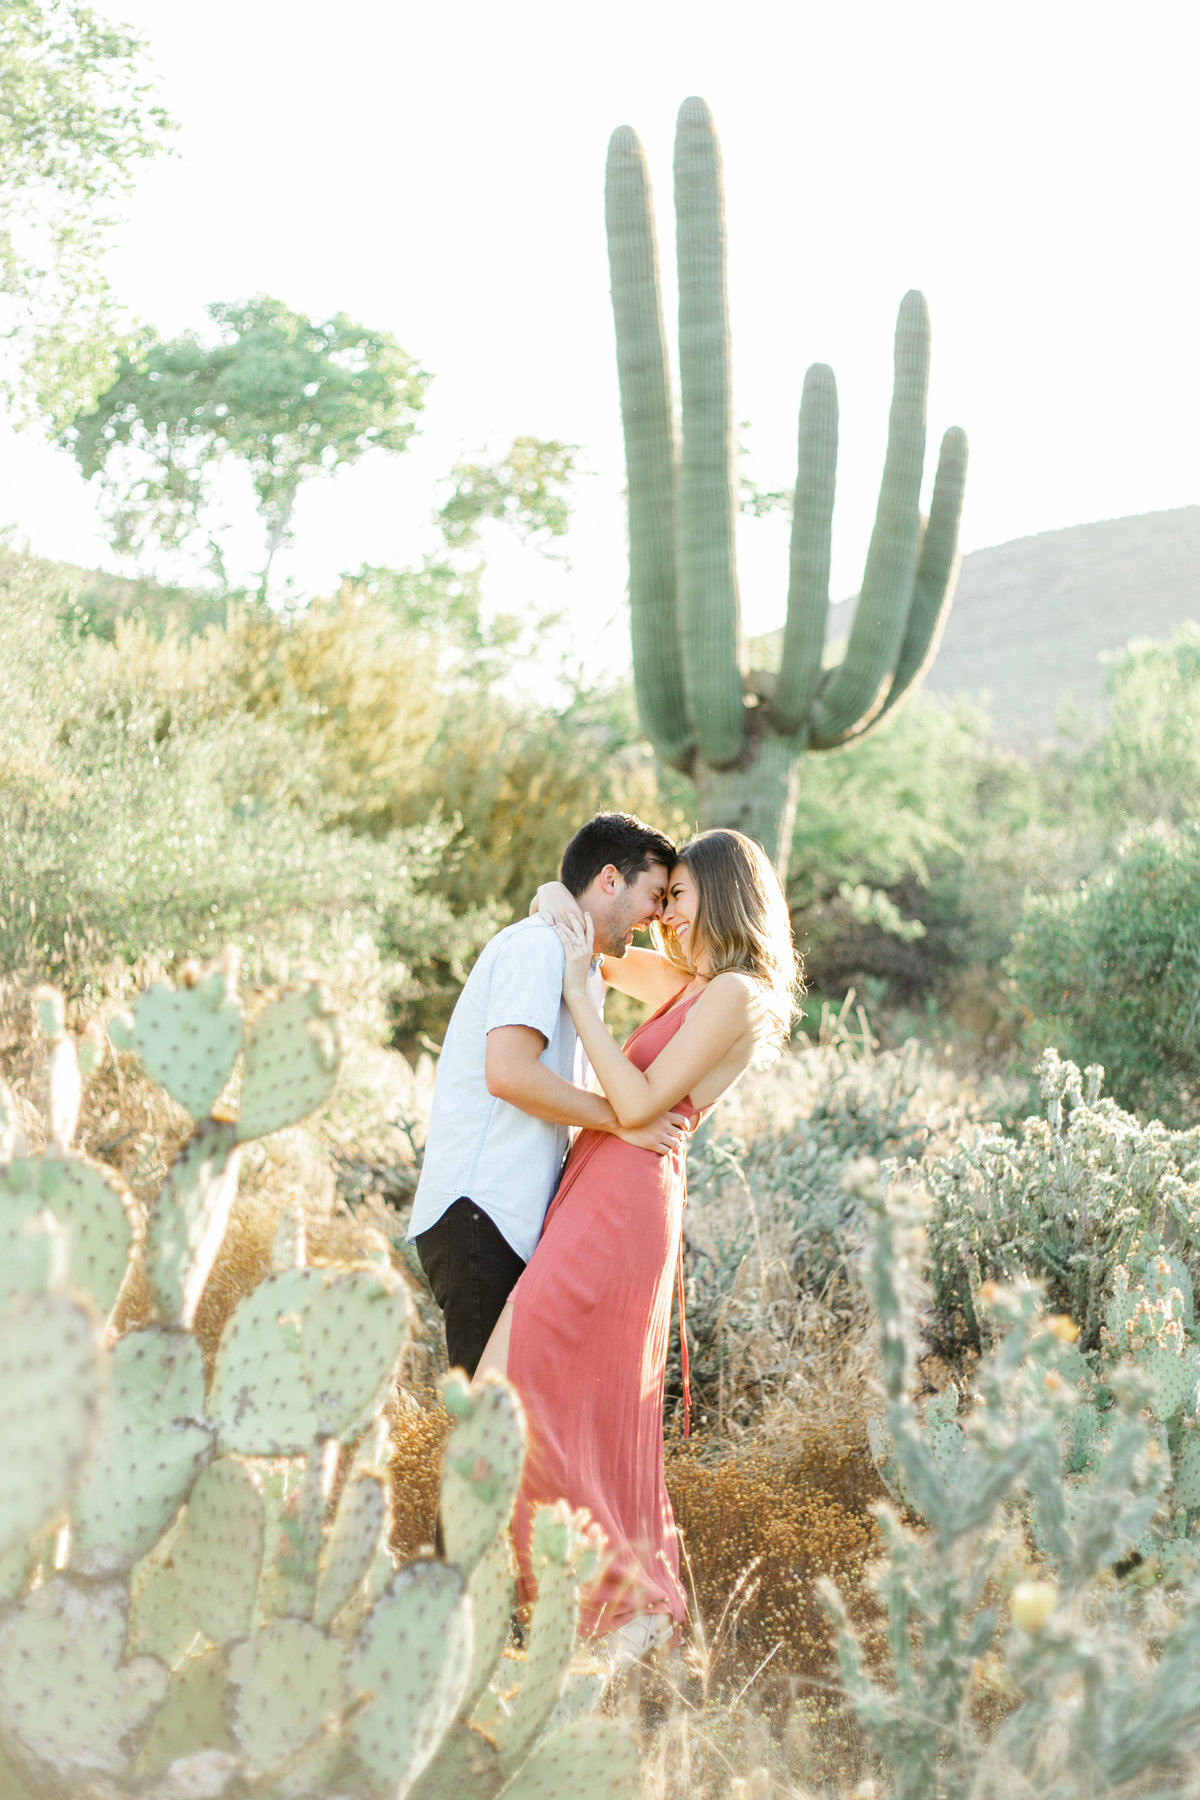 Karlie Colleen Photography - Arizona Desert Engagement - Brynne & Josh -135